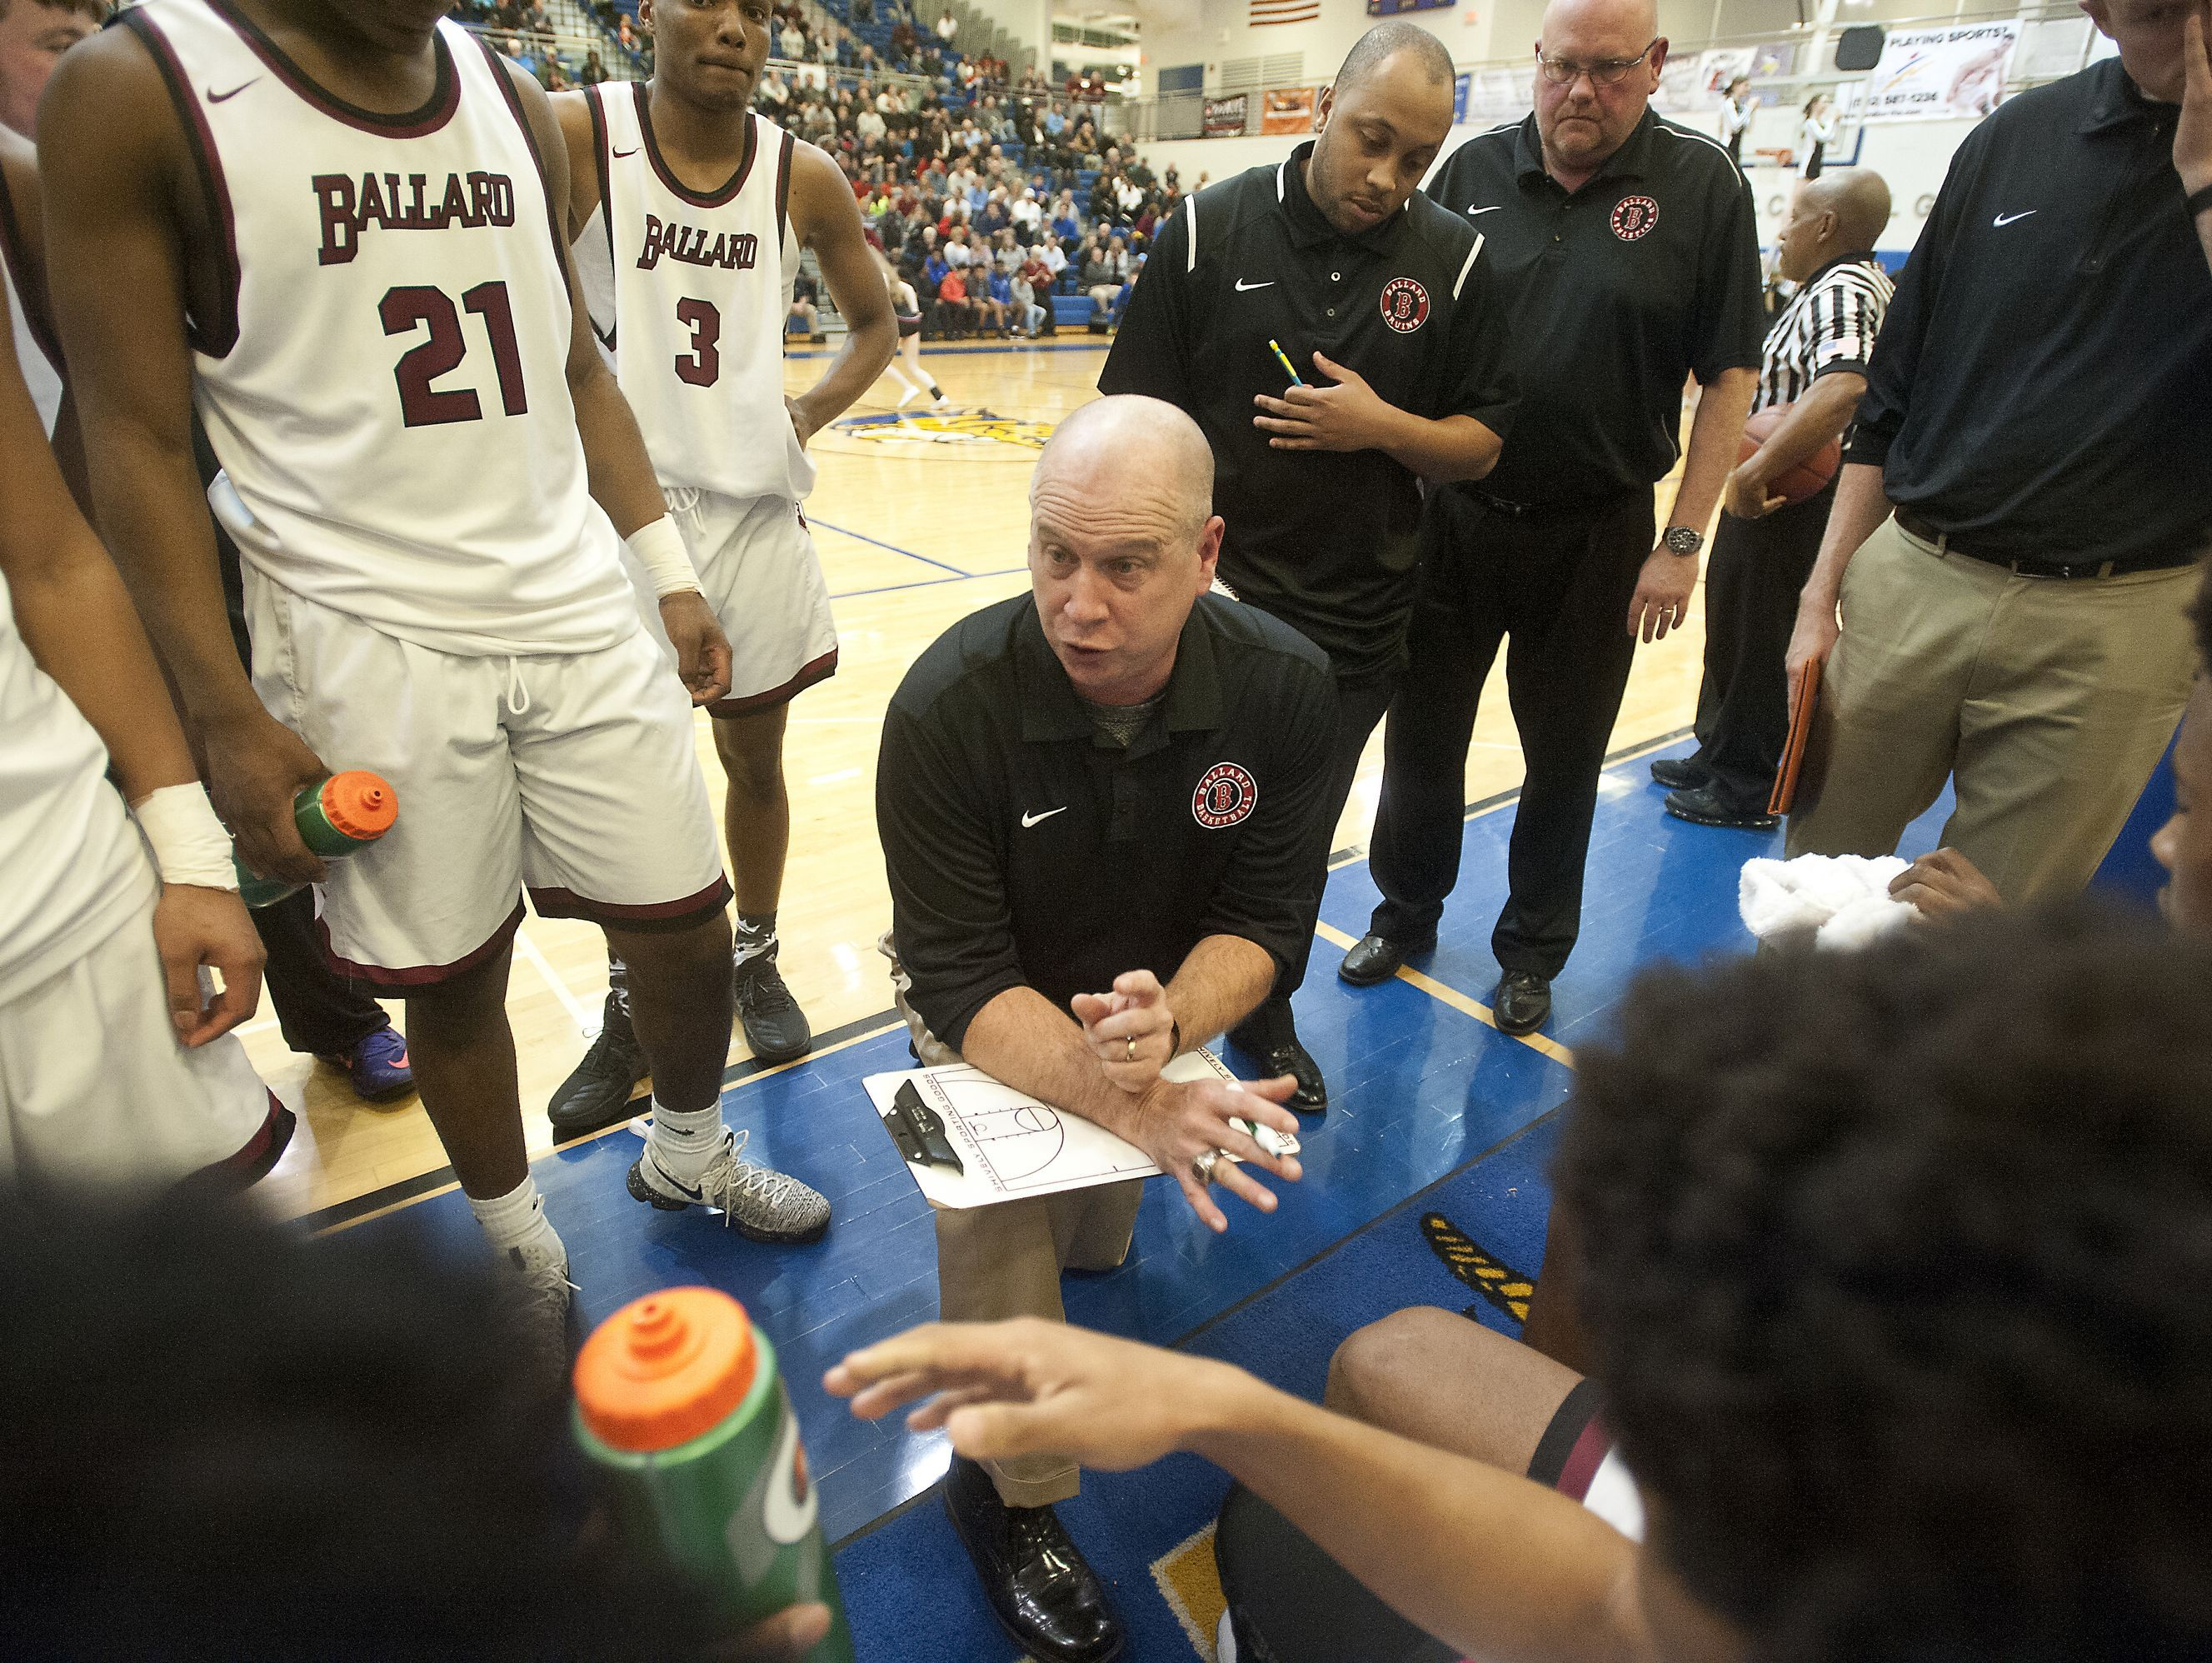 Ballard head basketball coach Chris C. Renner talks to his players during a time-out in the KHSAA boys 7th regional basketball semifinals. 02 March 2017